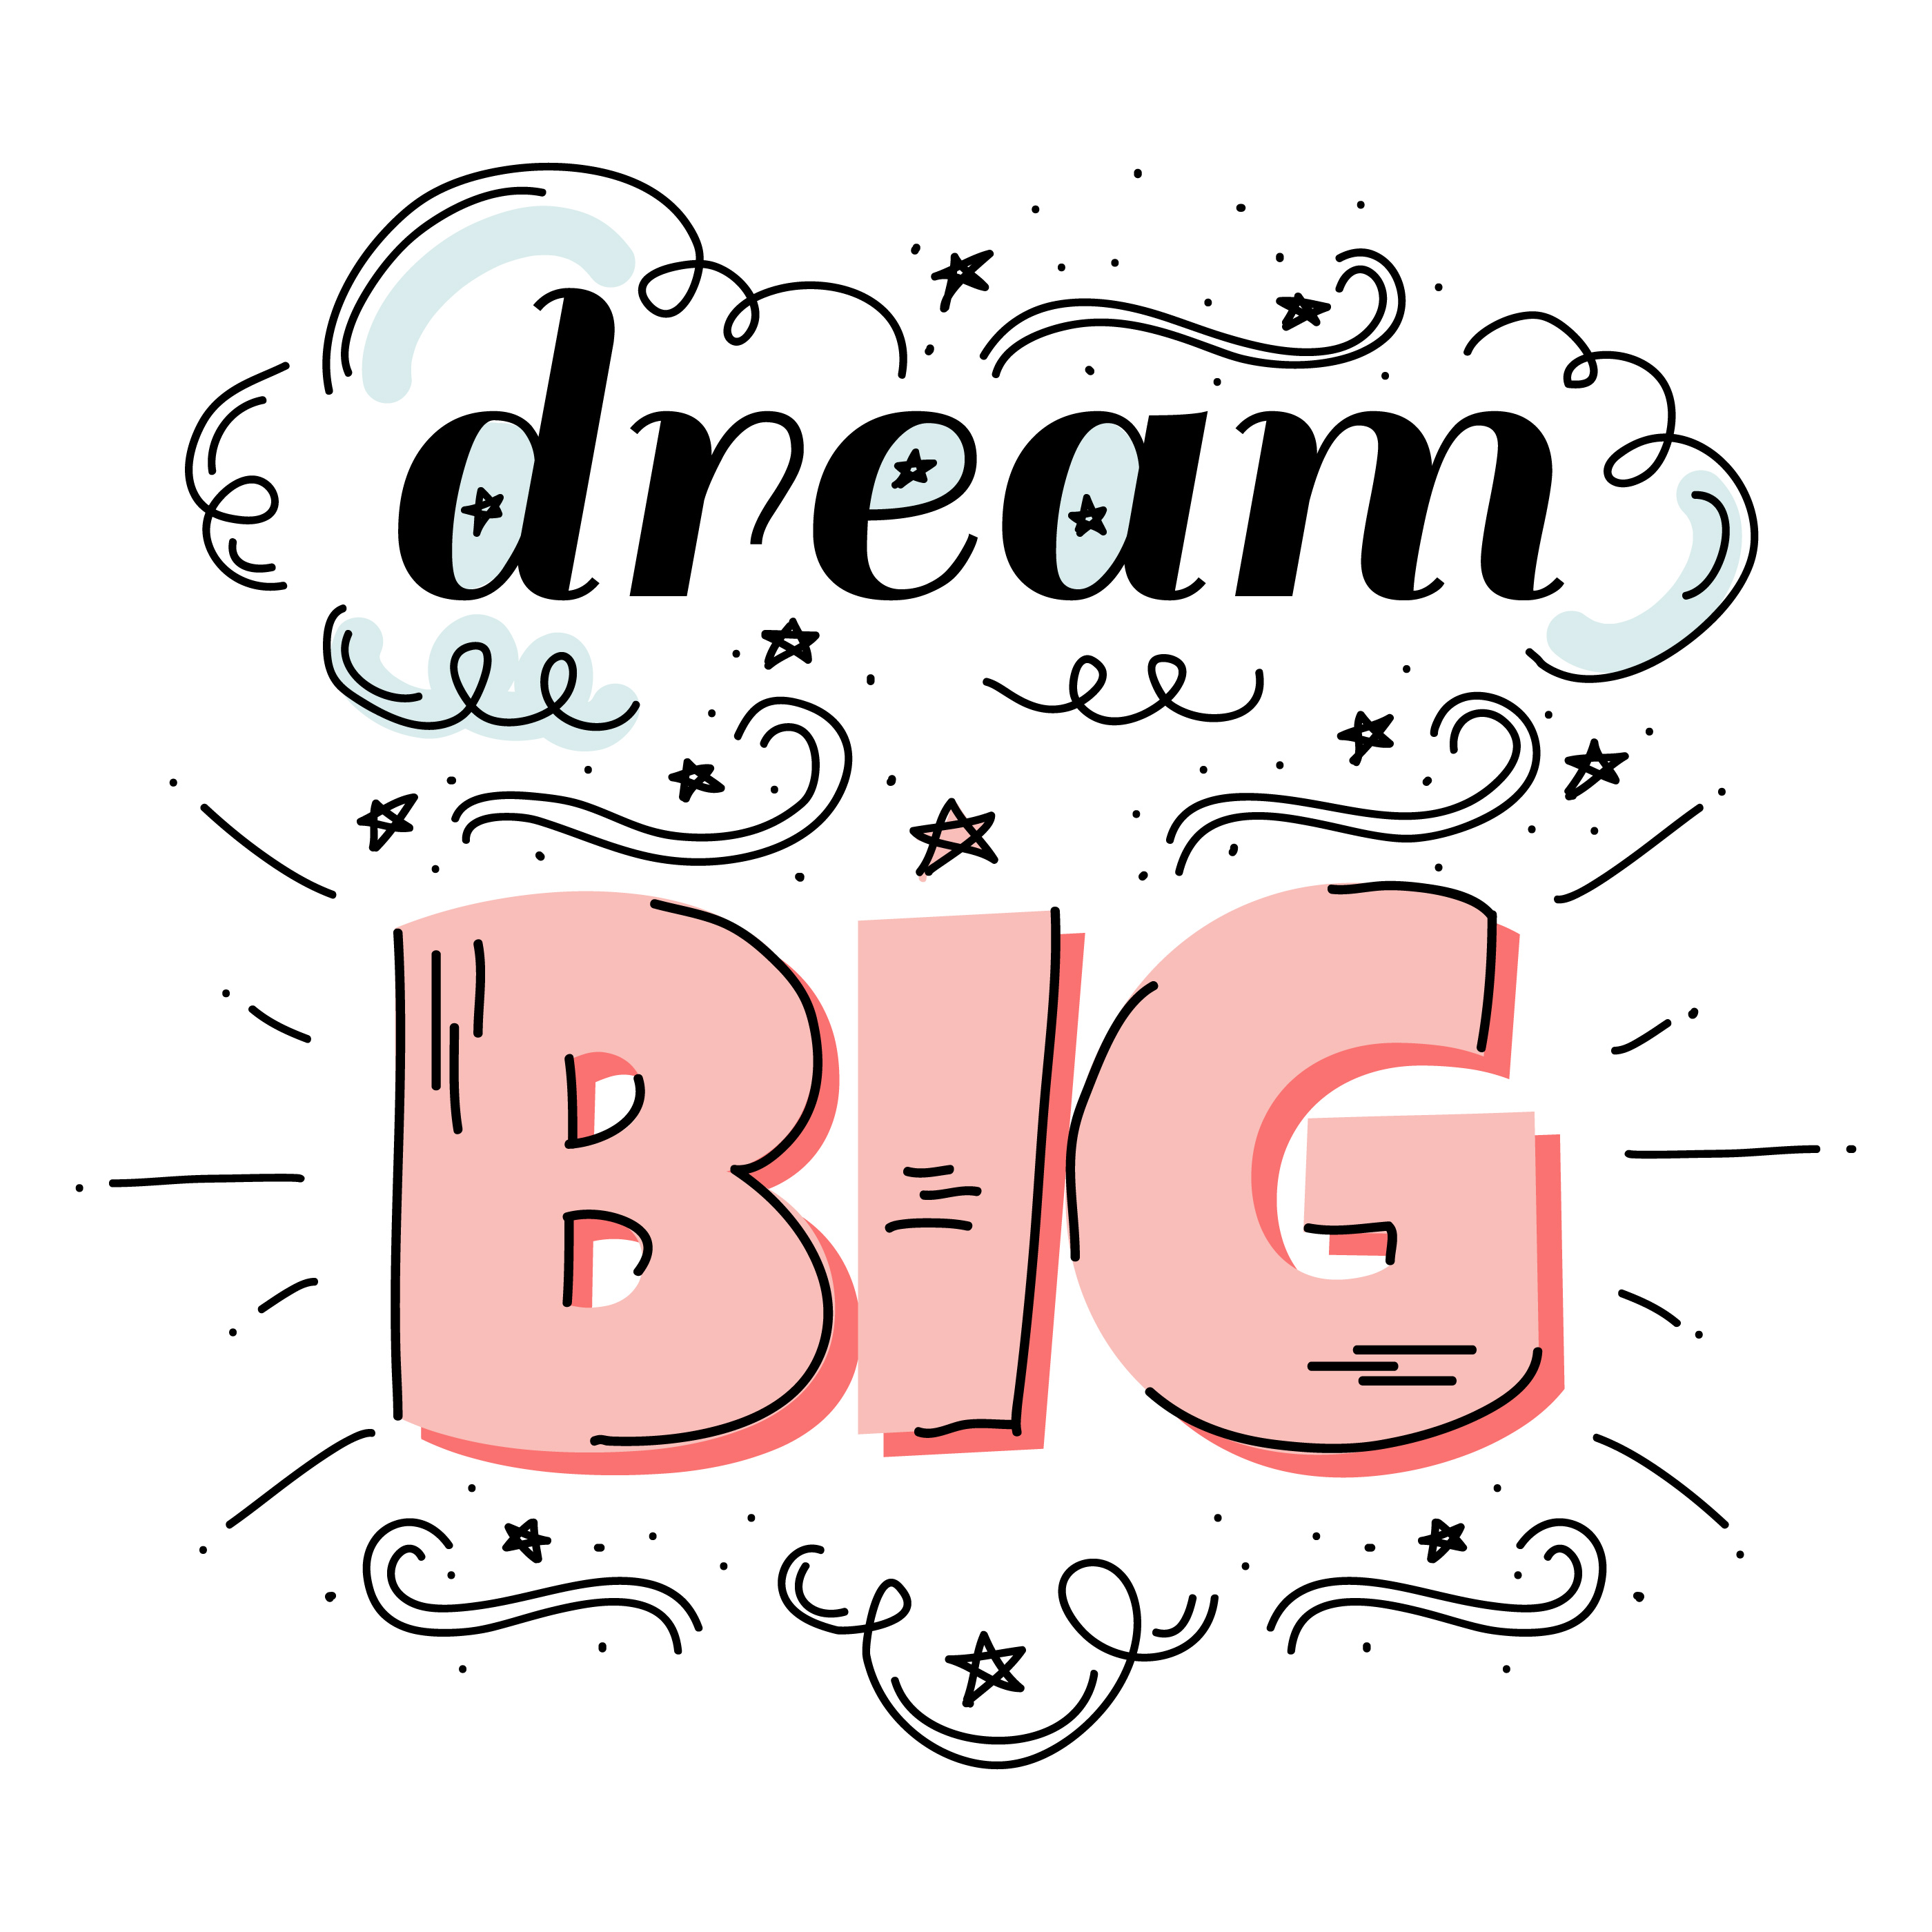 Dream Big Free Vector Art - (125 Free Downloads)